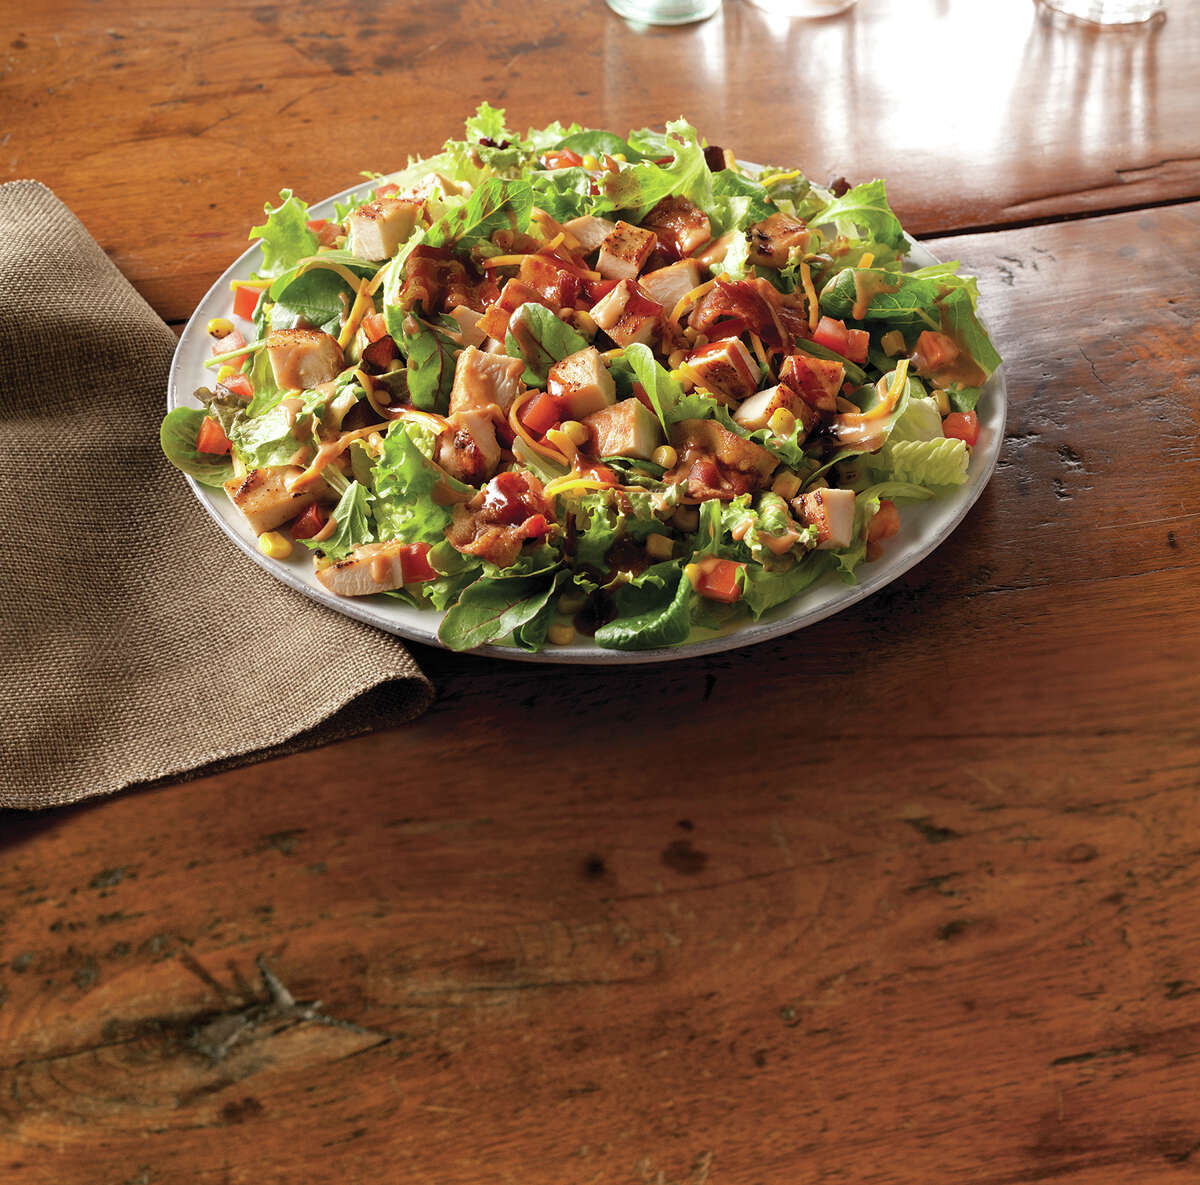 23. Wendy's BBQ Ranch Chicken Salad: What's that green stuff on the bottom? This works better once you toss the salad. As far as you can toss it. The chicken and ranch make magic together. (Click here to read the full review.)